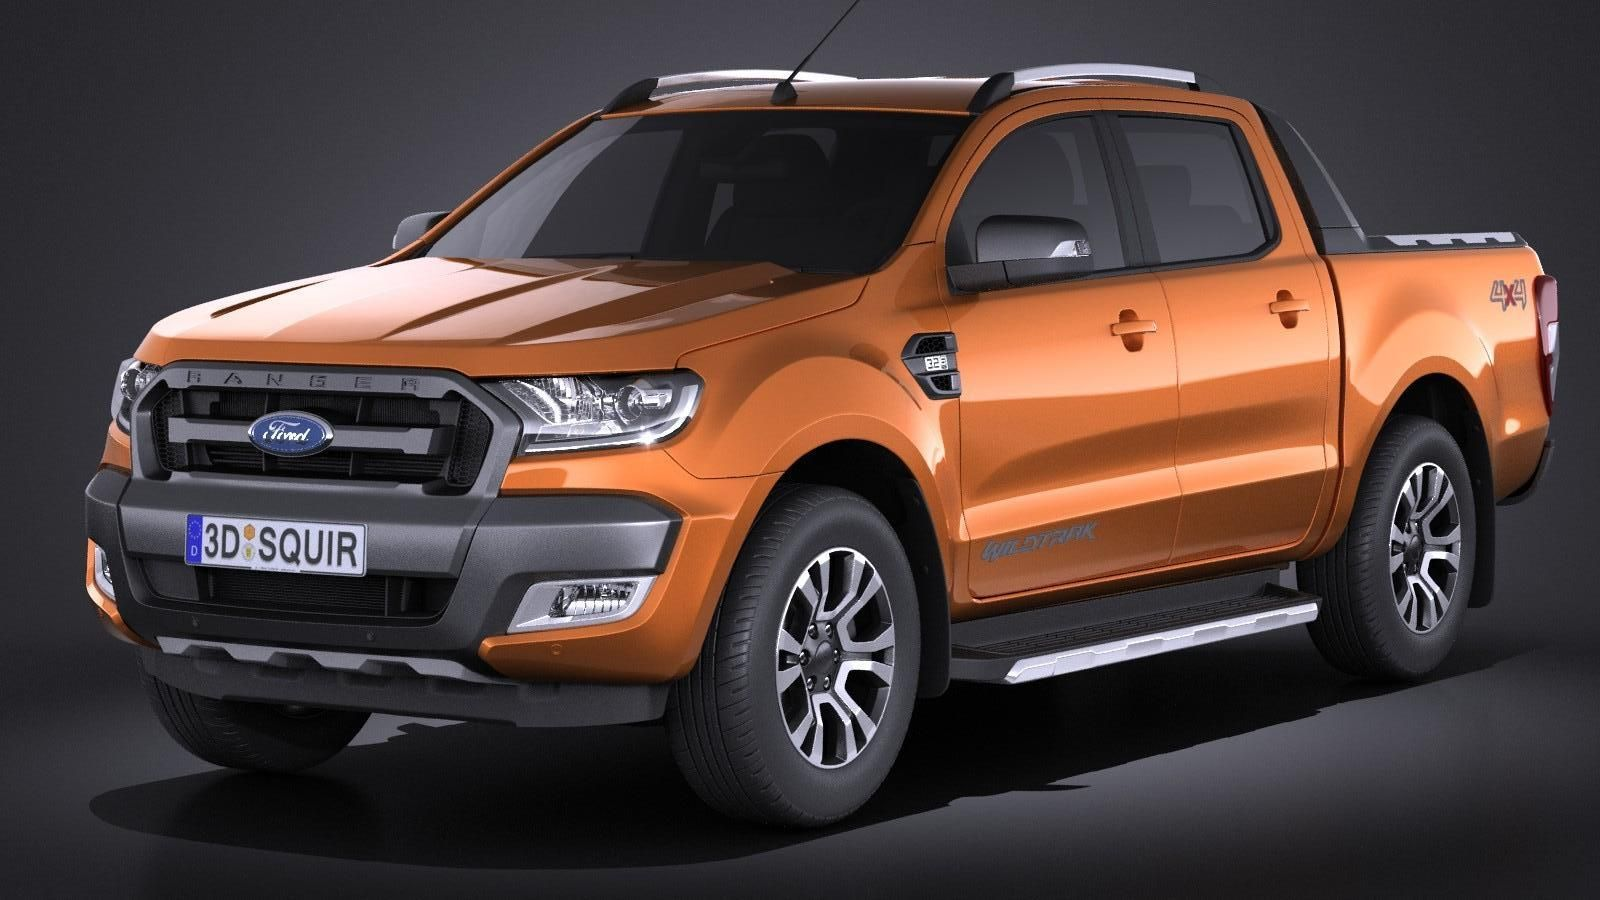 NEW FORD RANGER 2017 WALLPAPER (11282) - Freefuncar.com